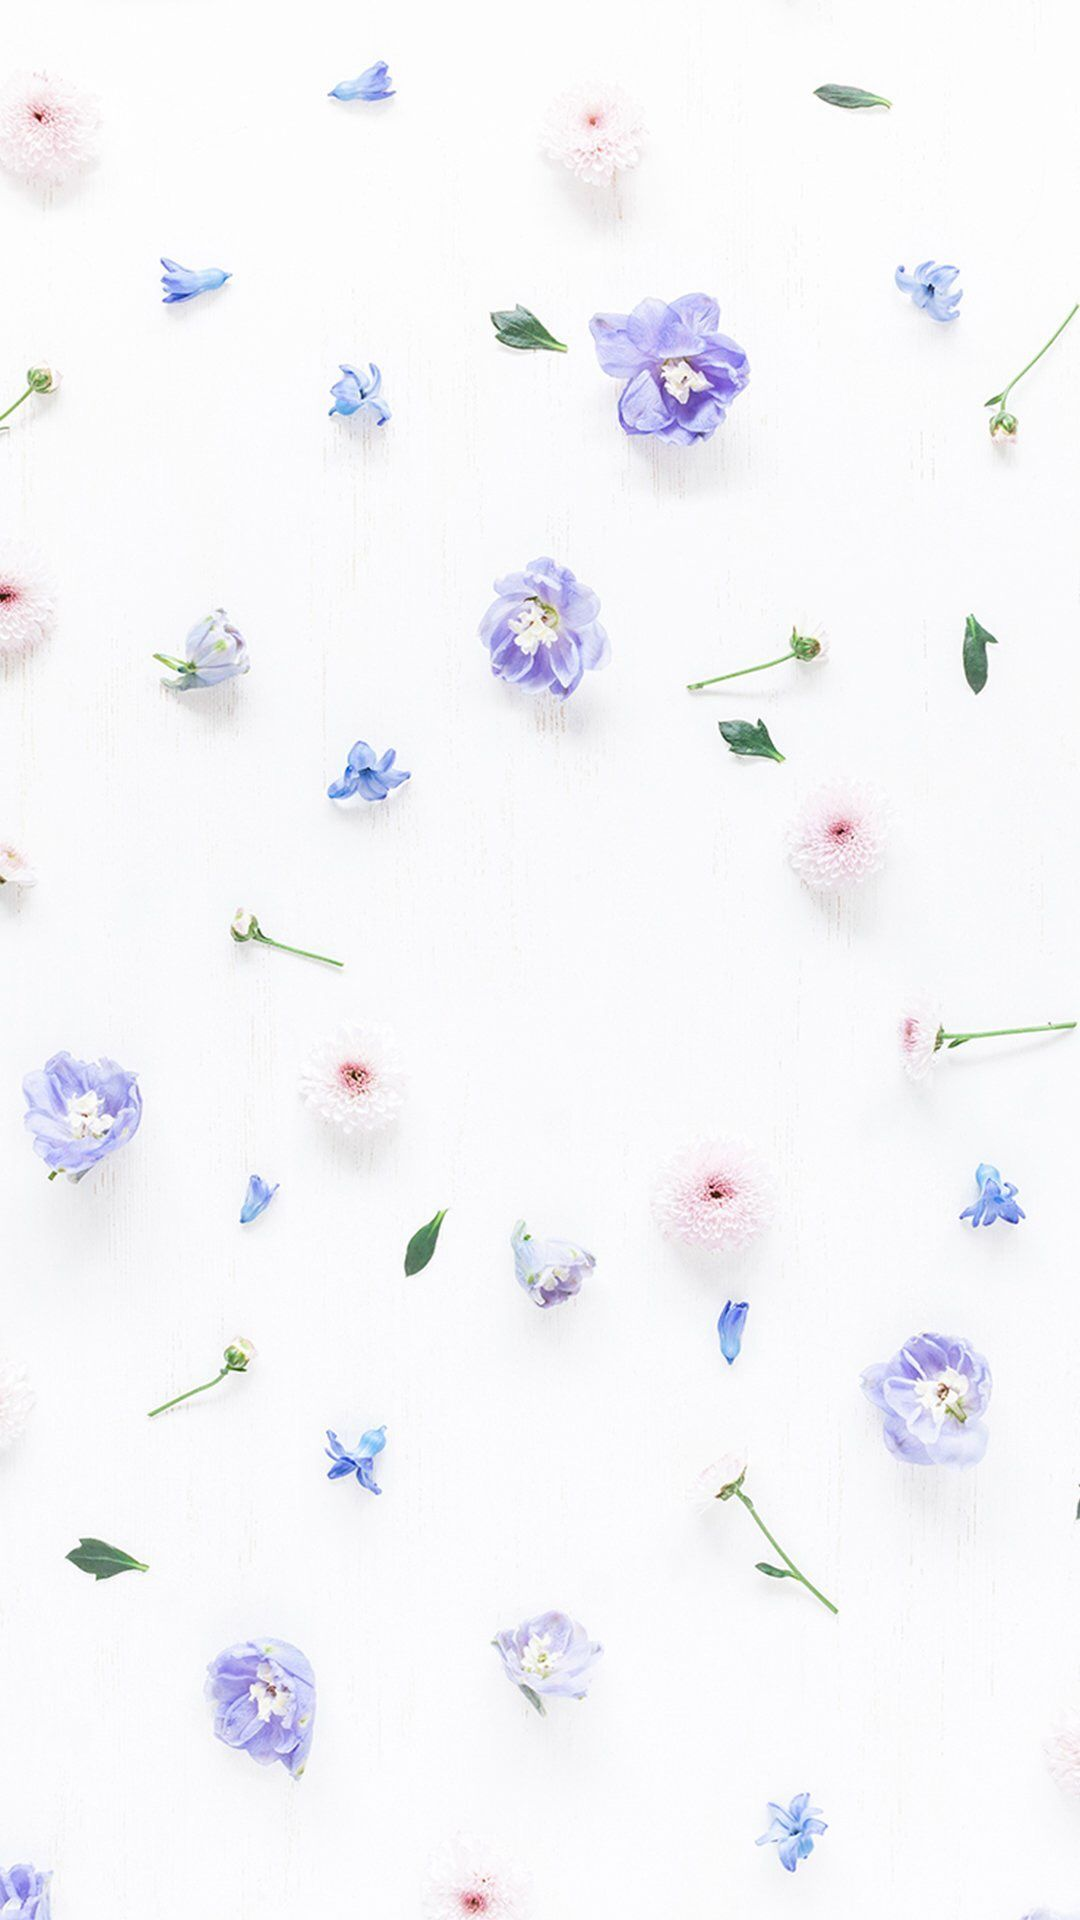 Wallpapers In 2019 Floral Wallpaper Iphone Flowery